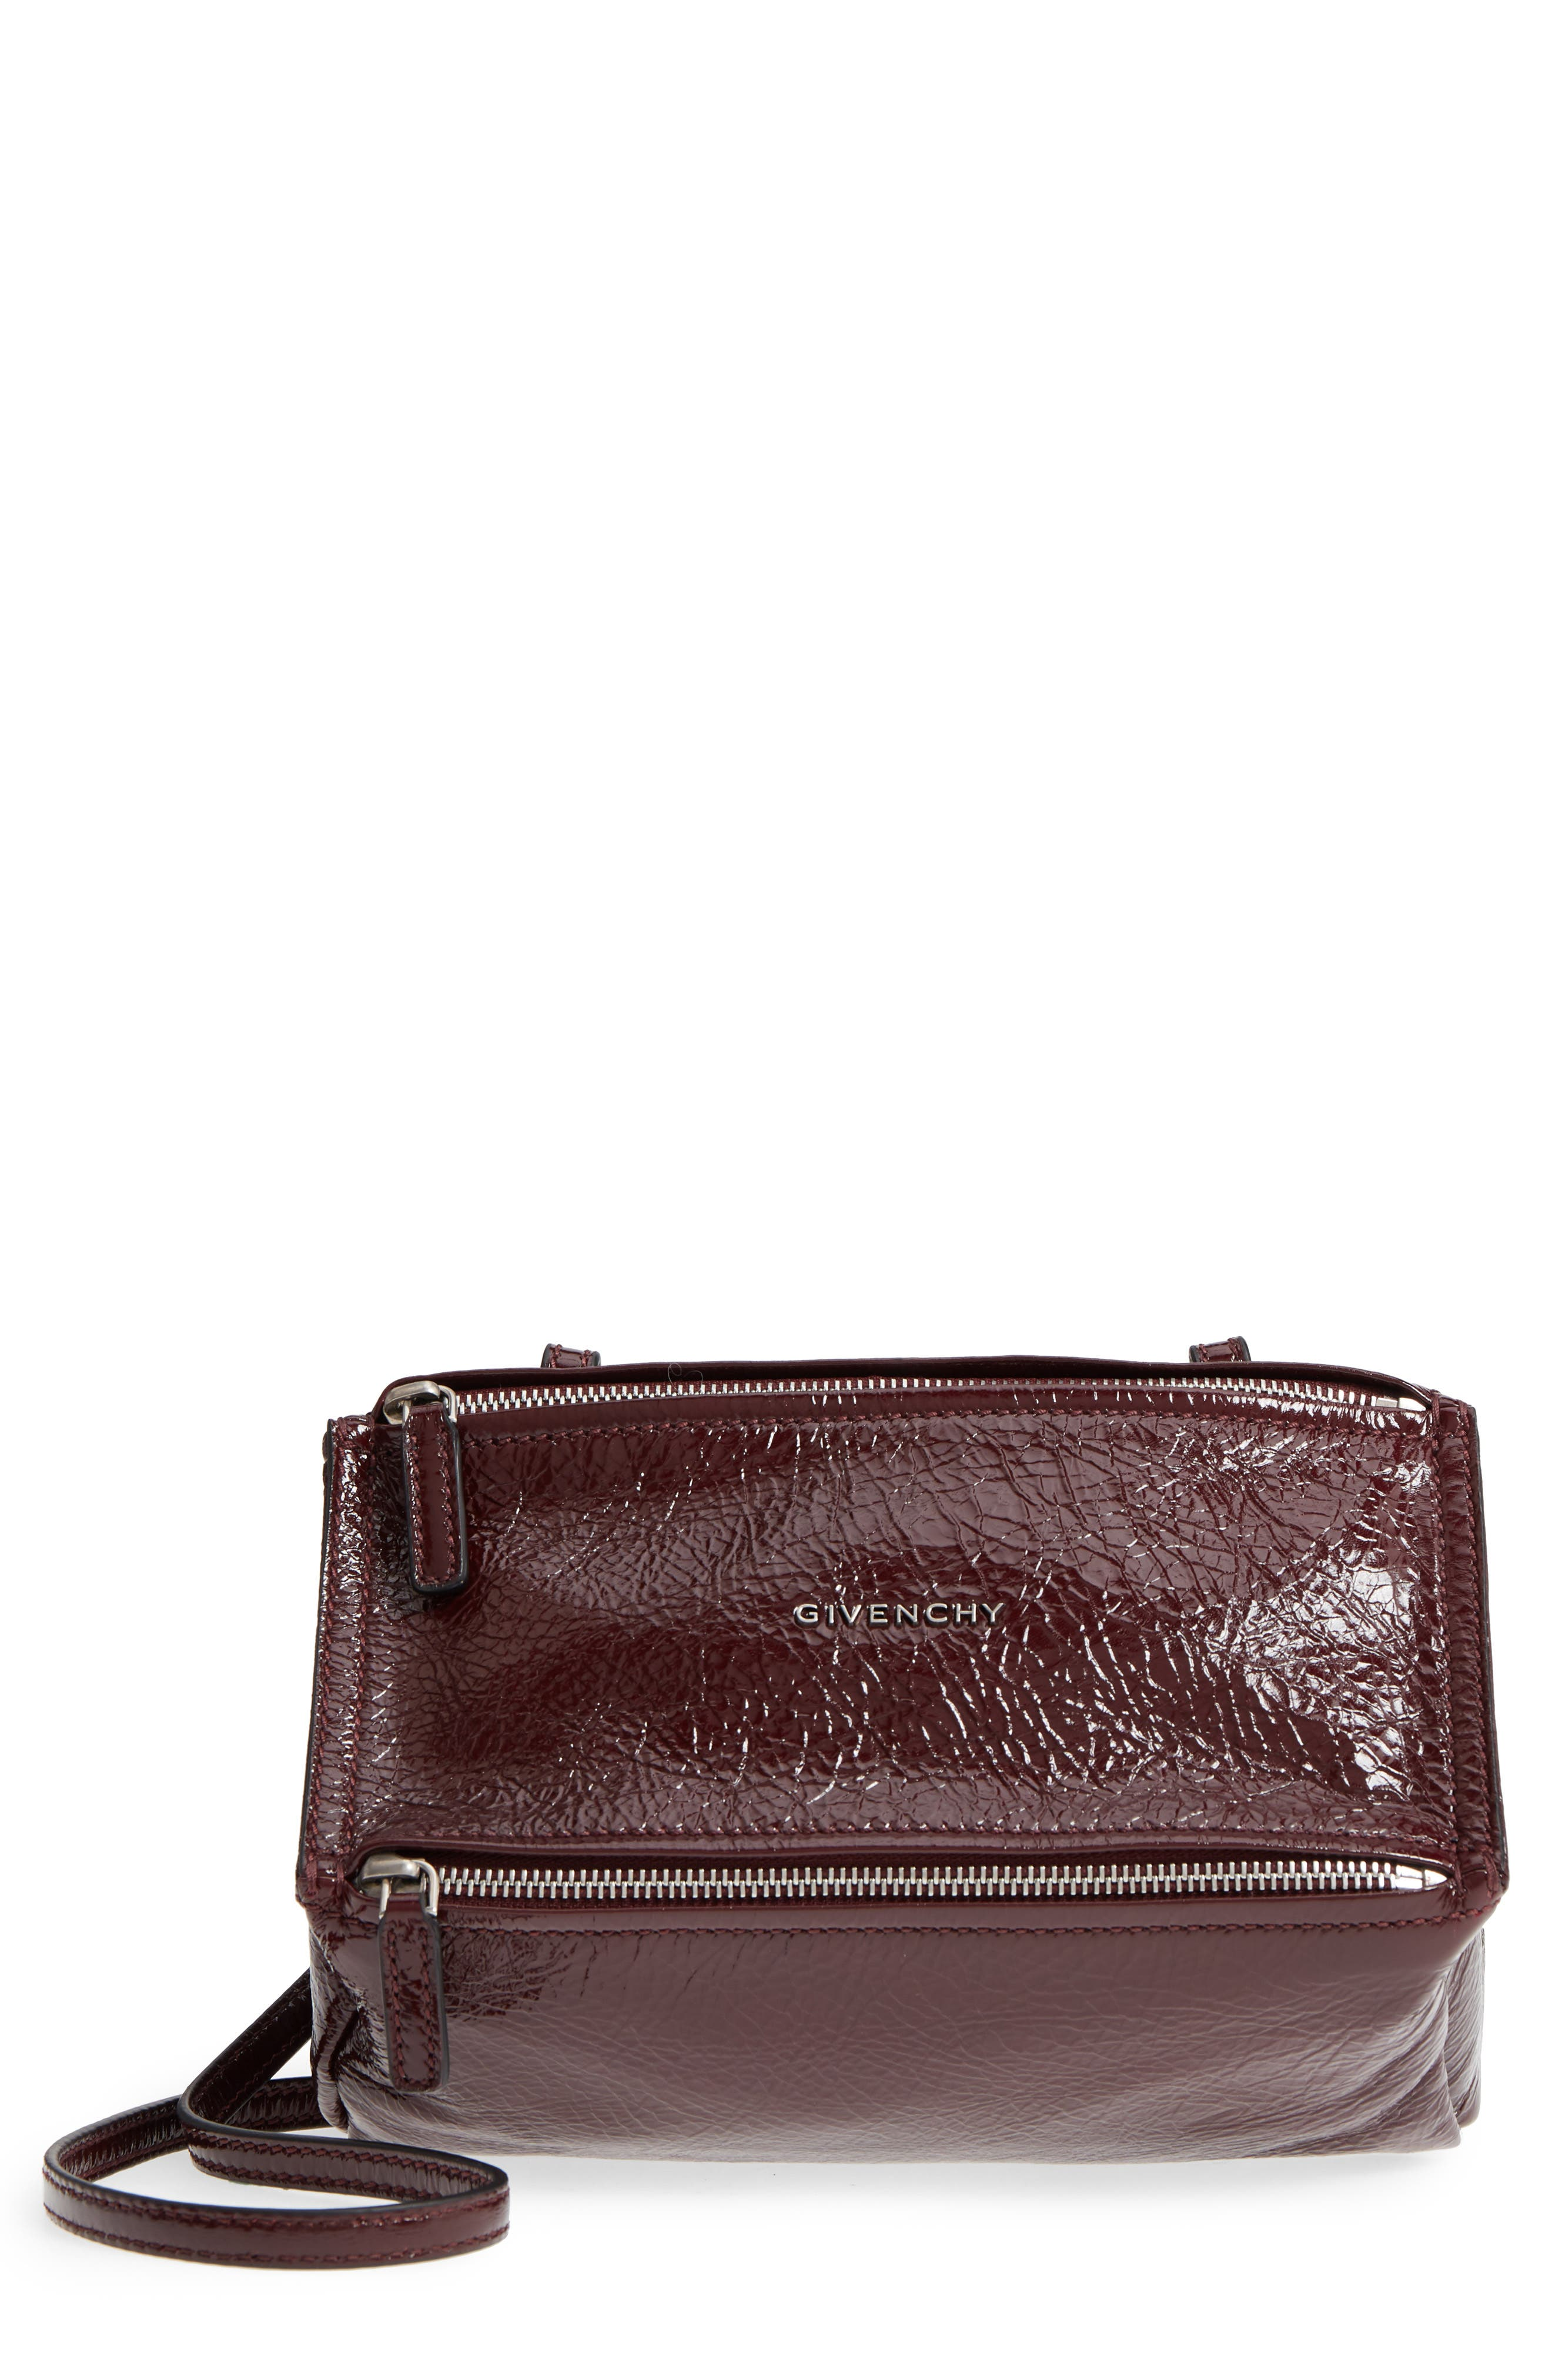 Givenchy Mini Pandora Creased Patent Leather Satchel